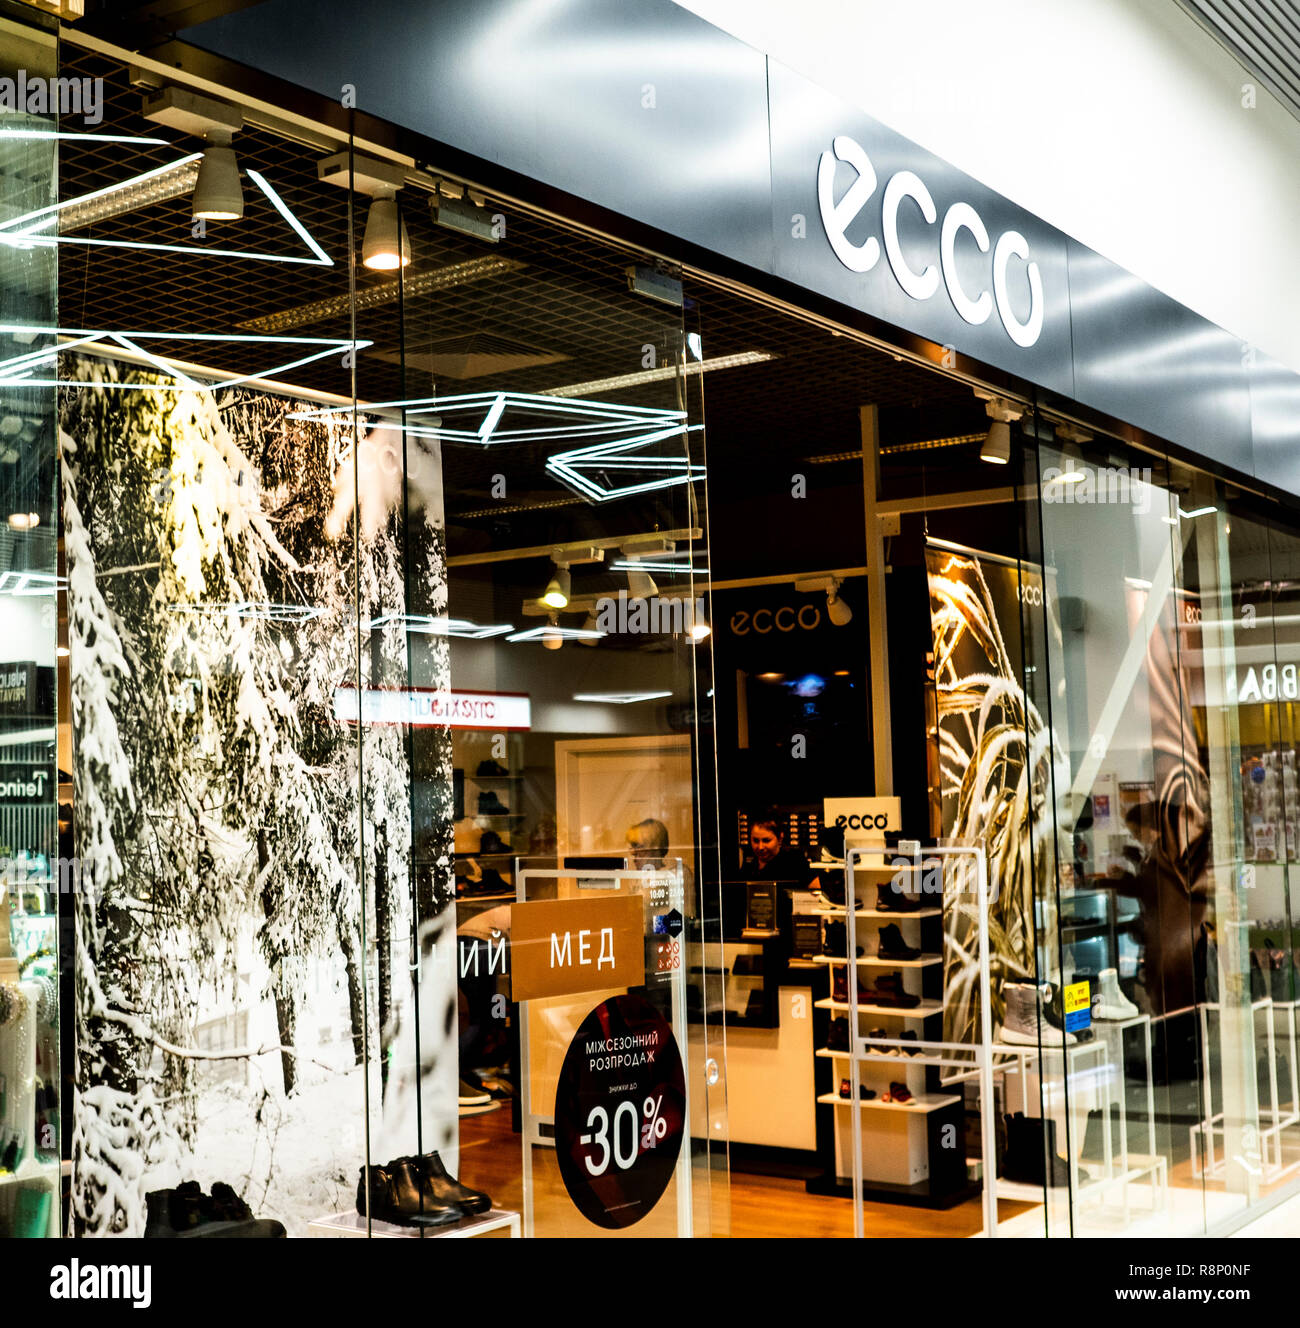 Ecco Clothing Store Stock Photos \u0026 Ecco